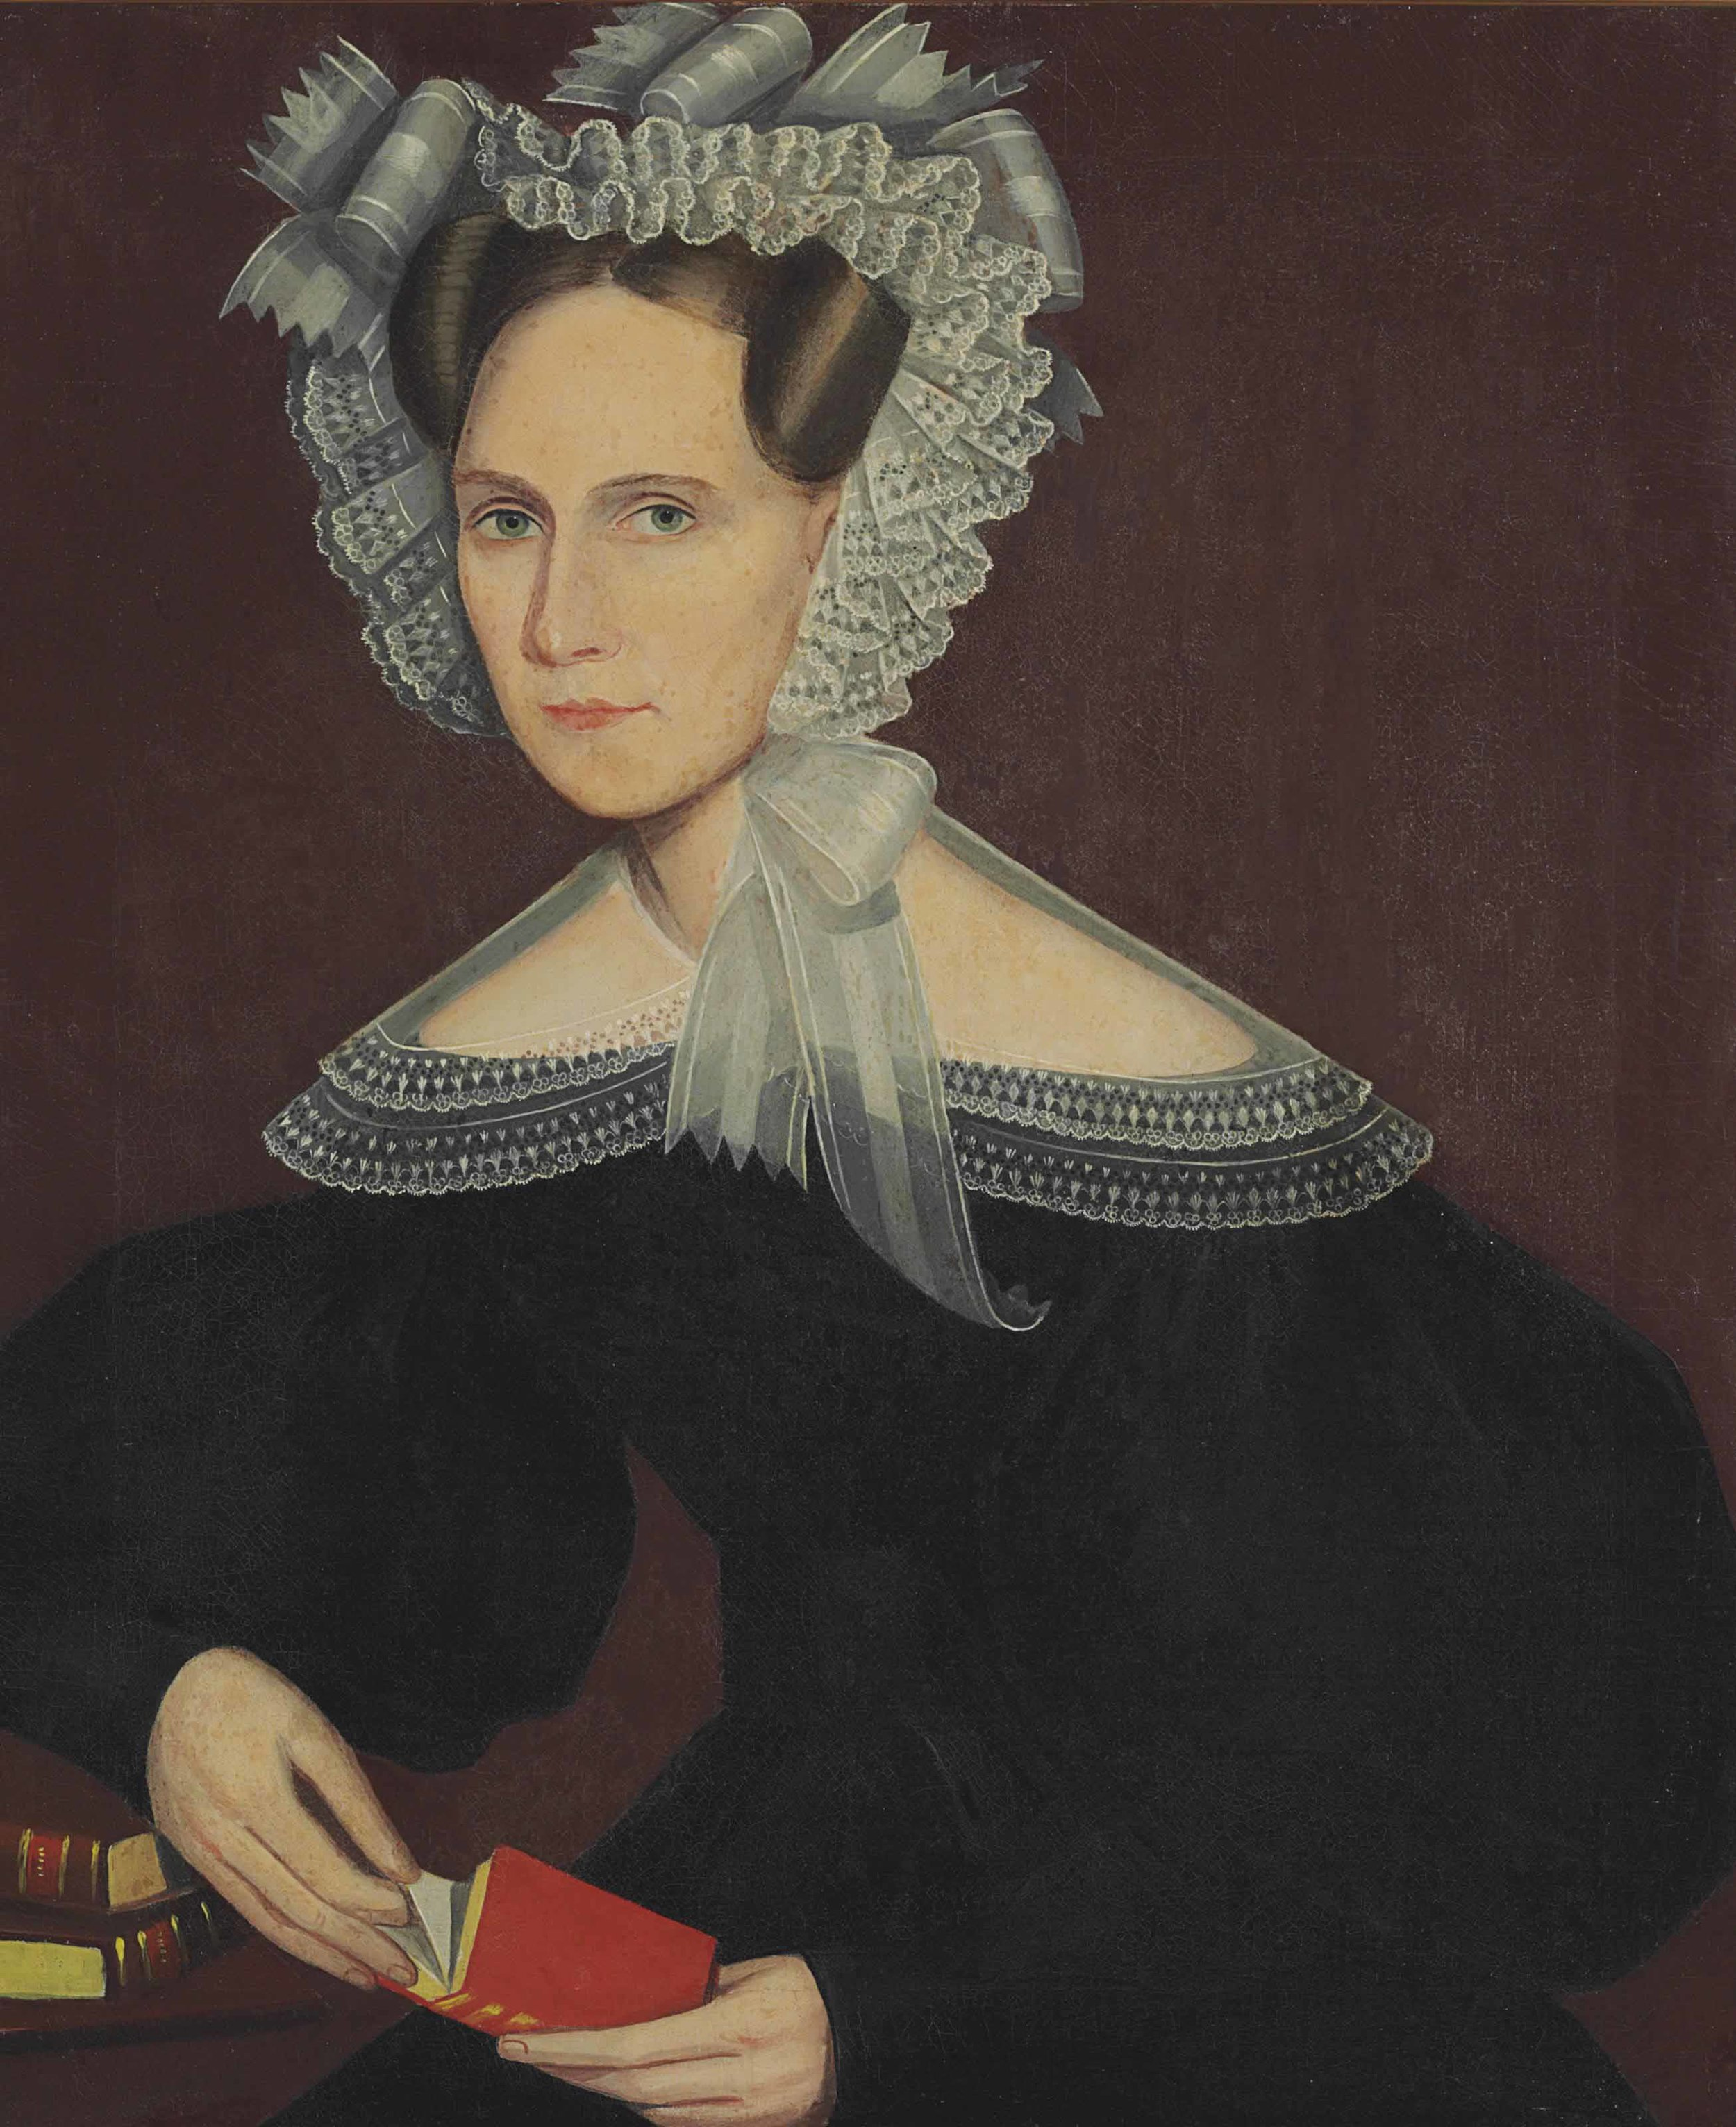 2015_NYR_03703_0098_000(attributed_to_ammi_phillips_portrait_of_miss_a_e_allen).jpg